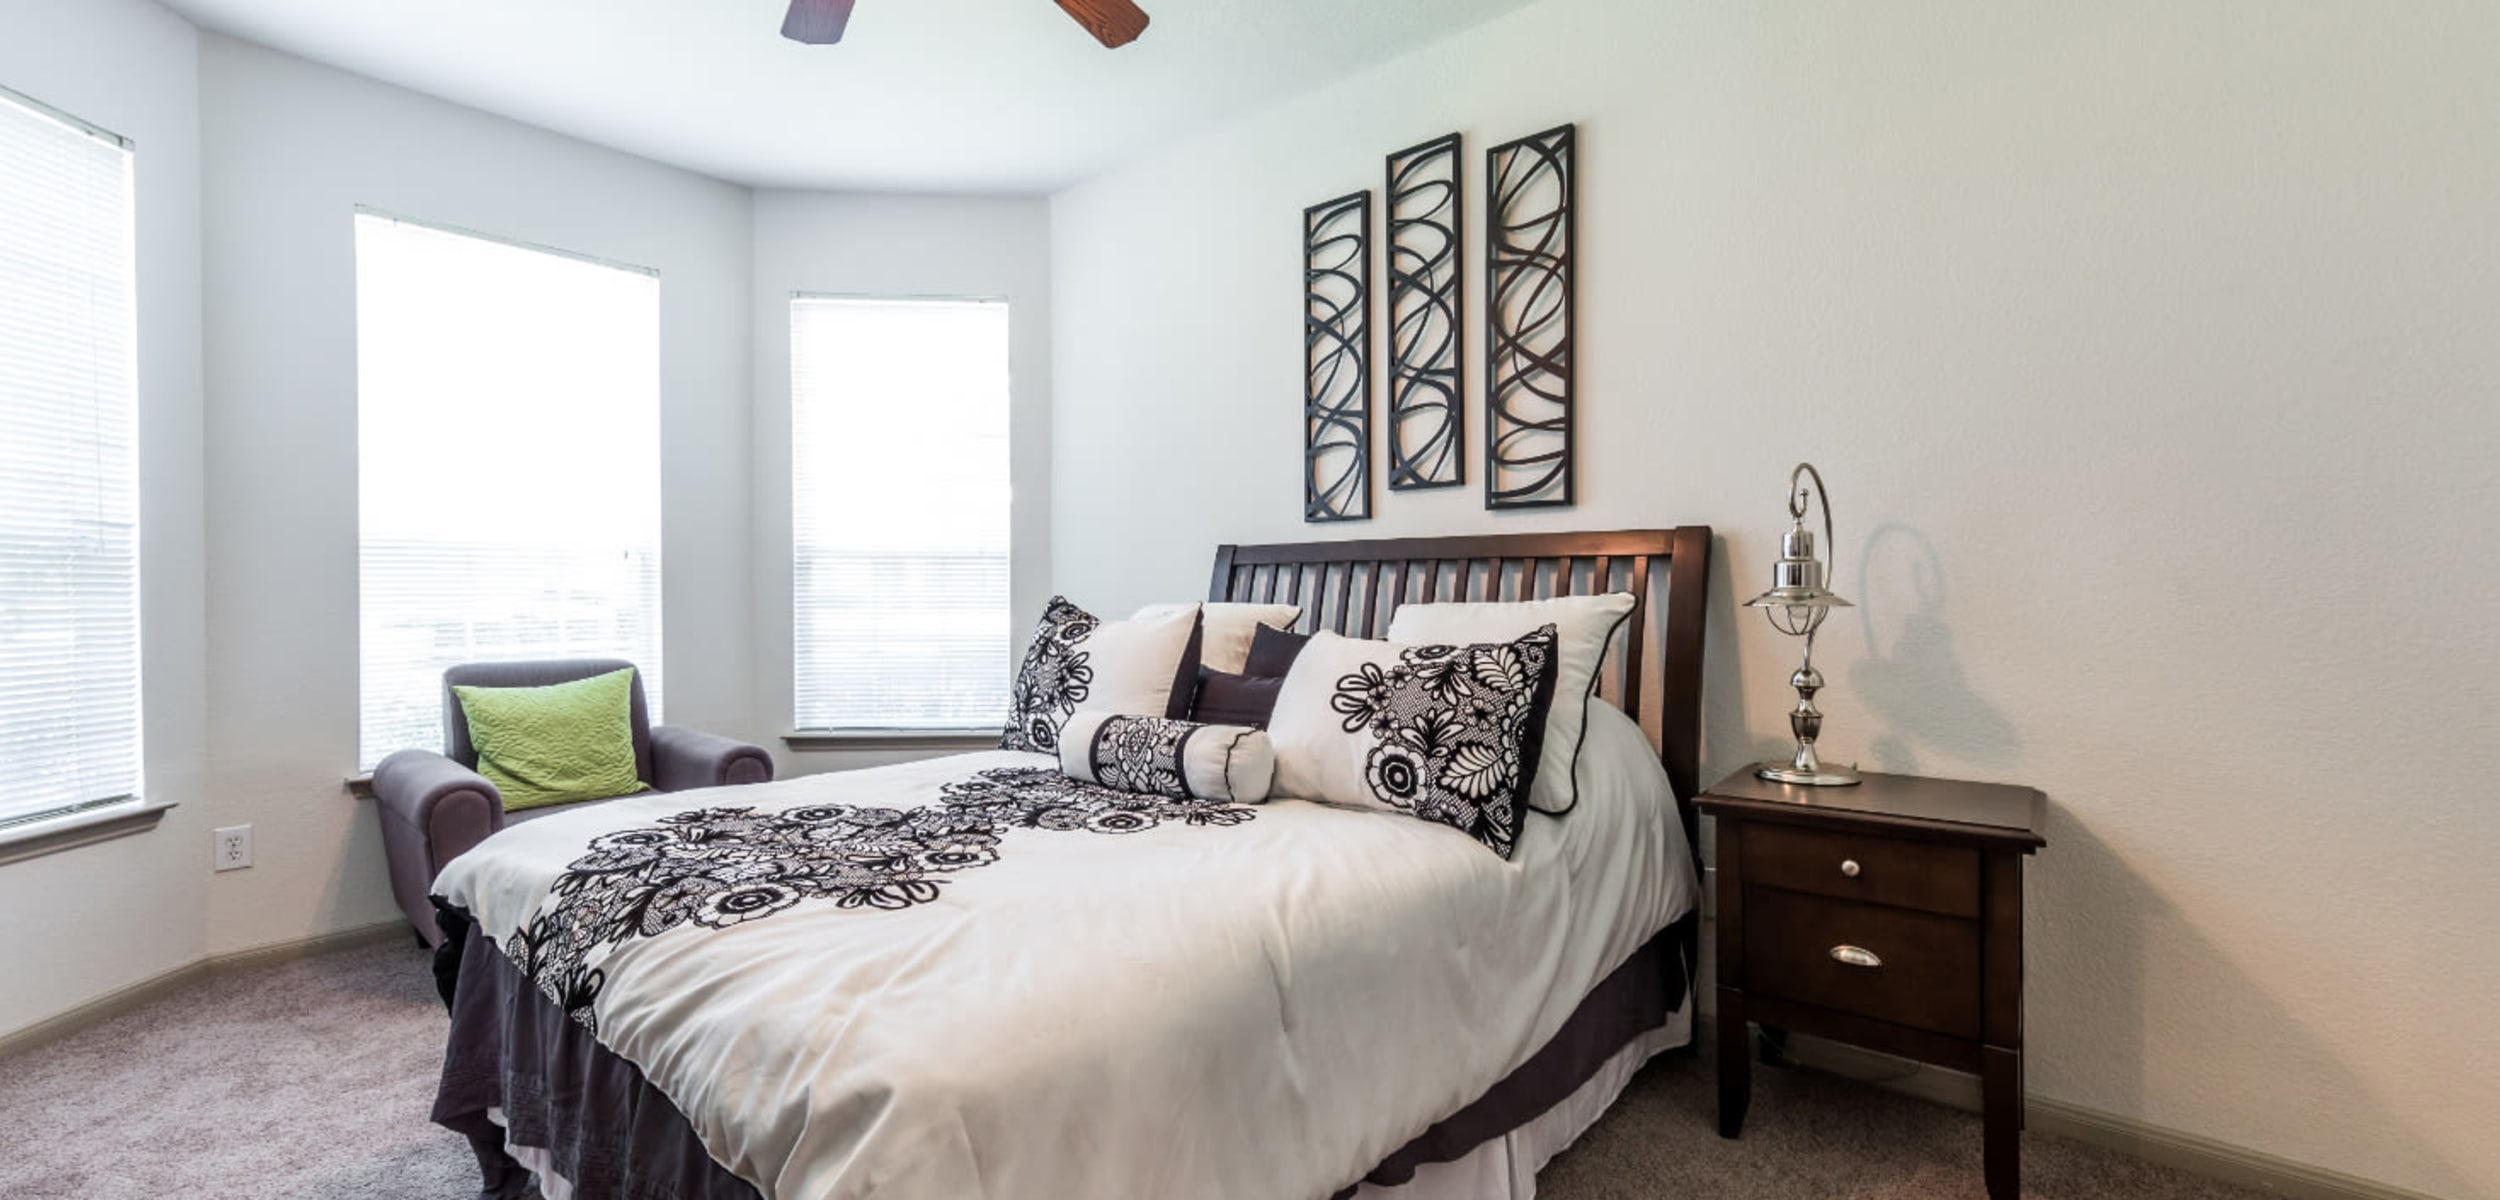 Carpeted bedroom with multiple windows at Marquis at Clear Lake in Webster, Texas